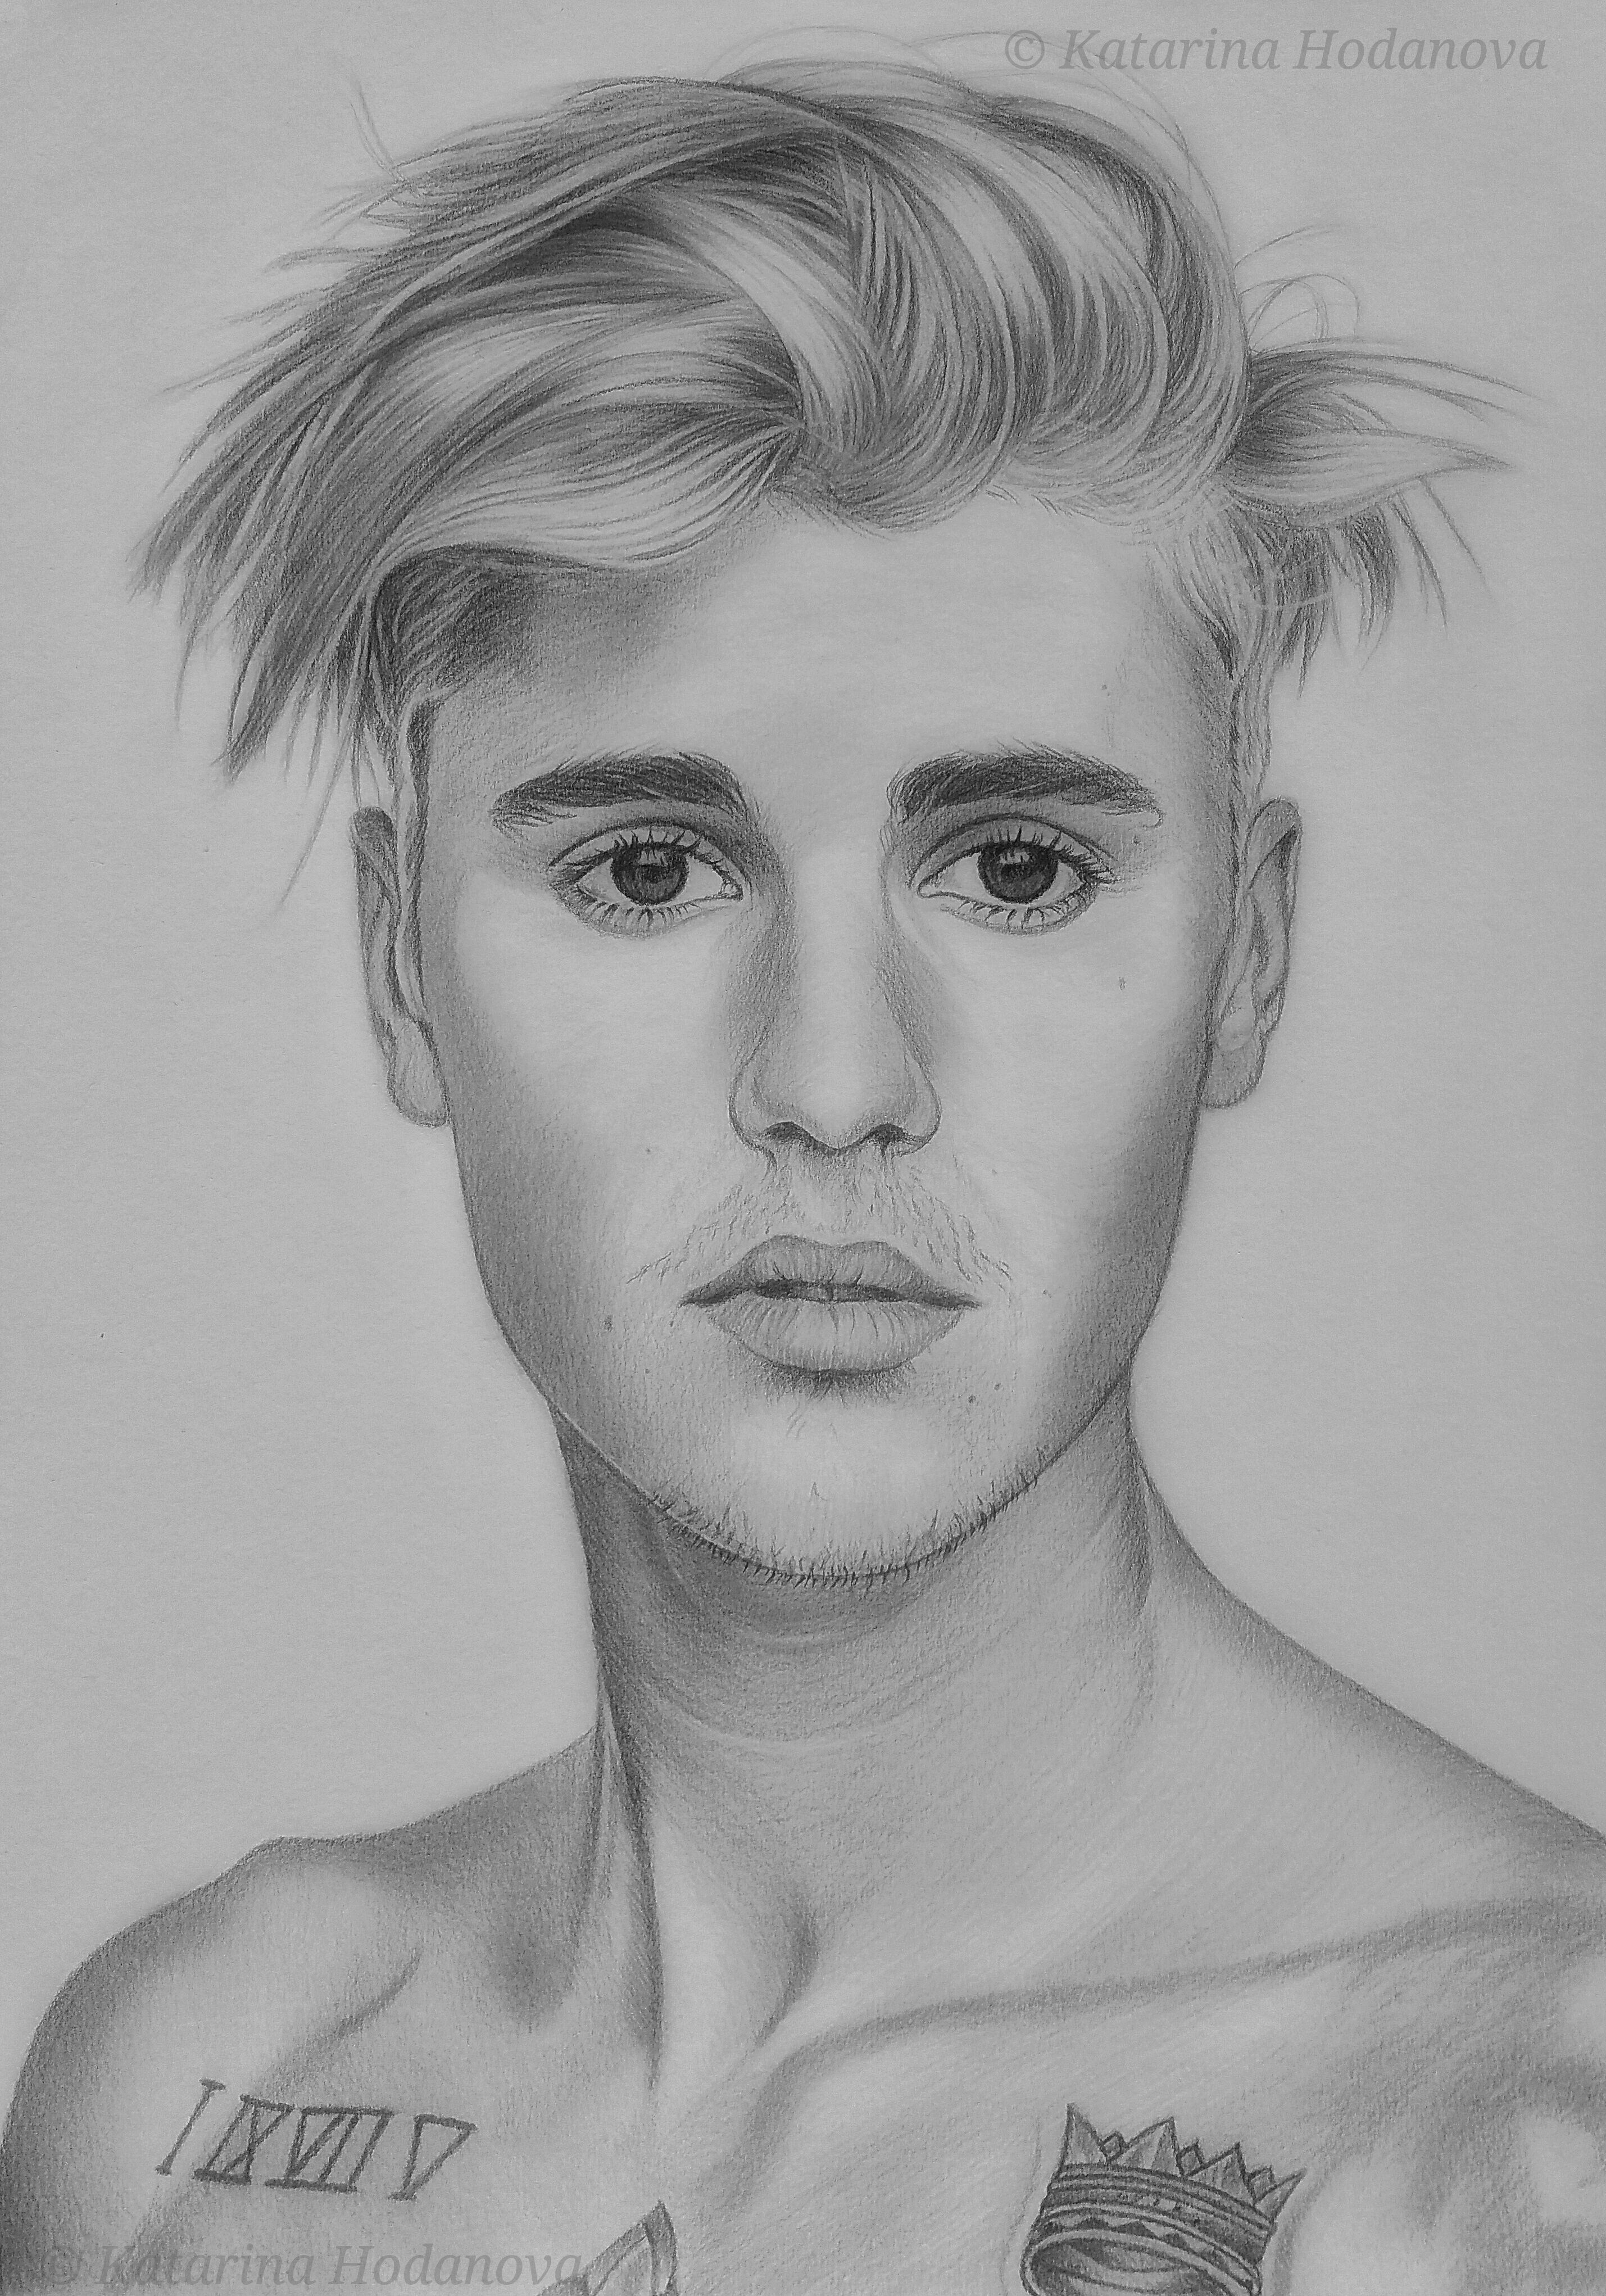 Justin bieber graphite pencil drawing size 297 x 42 cm canson paper